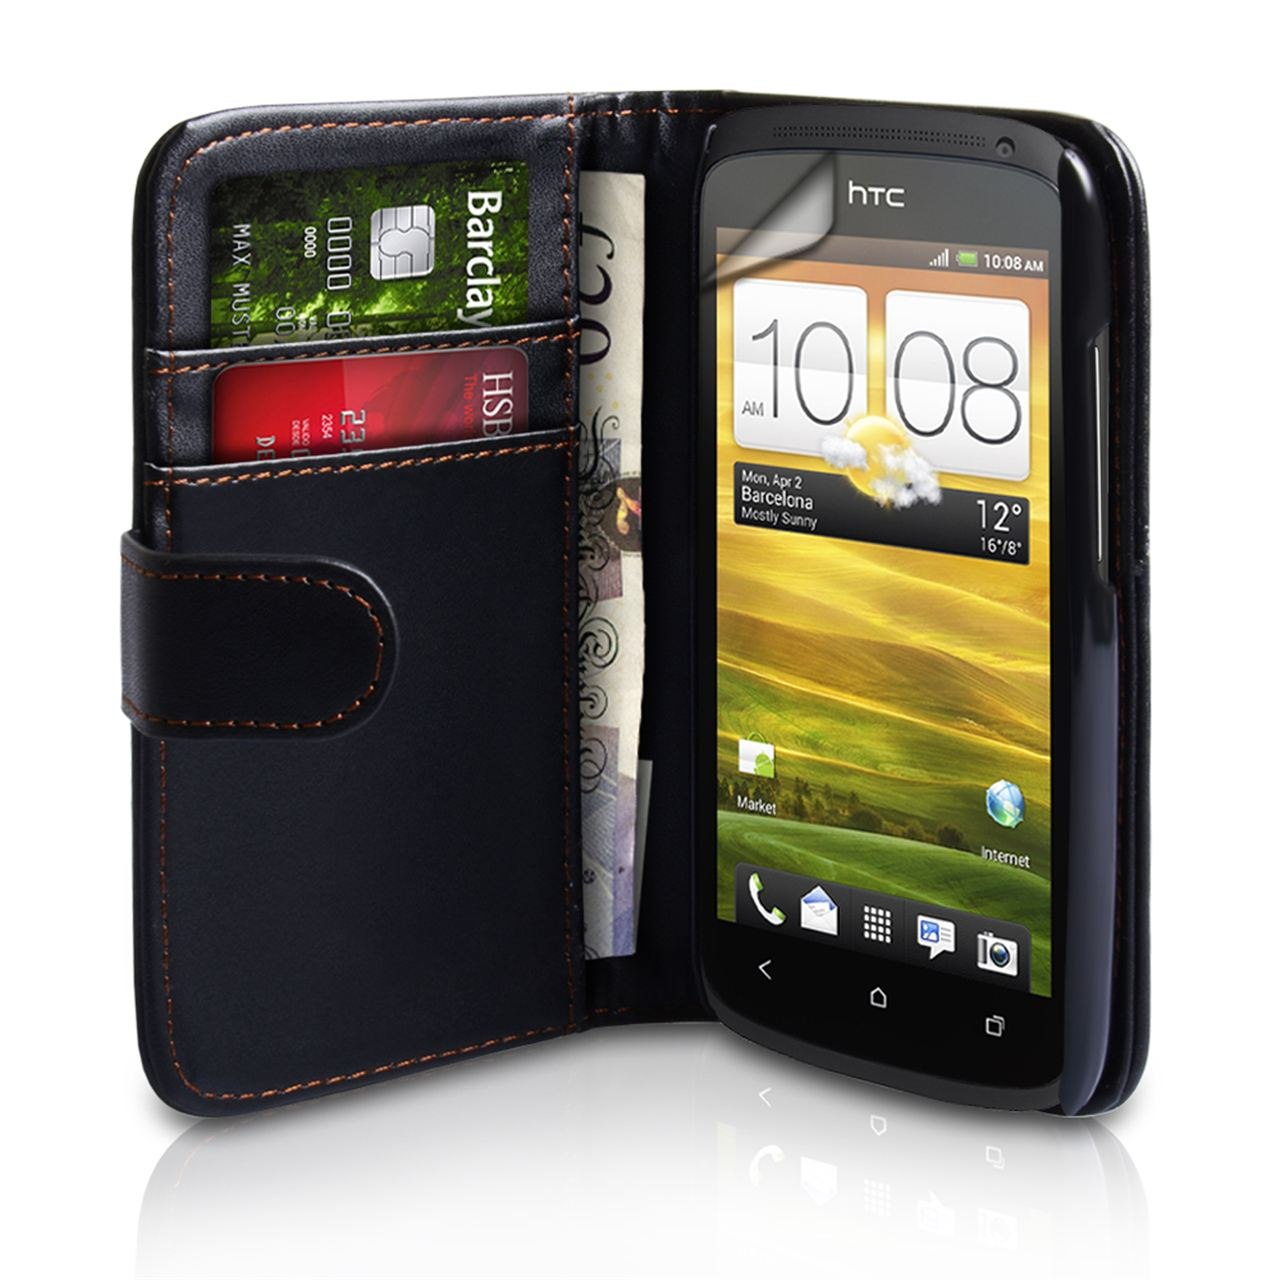 YouSave Accessories HTC One S Leather Effect Wallet Case - Black